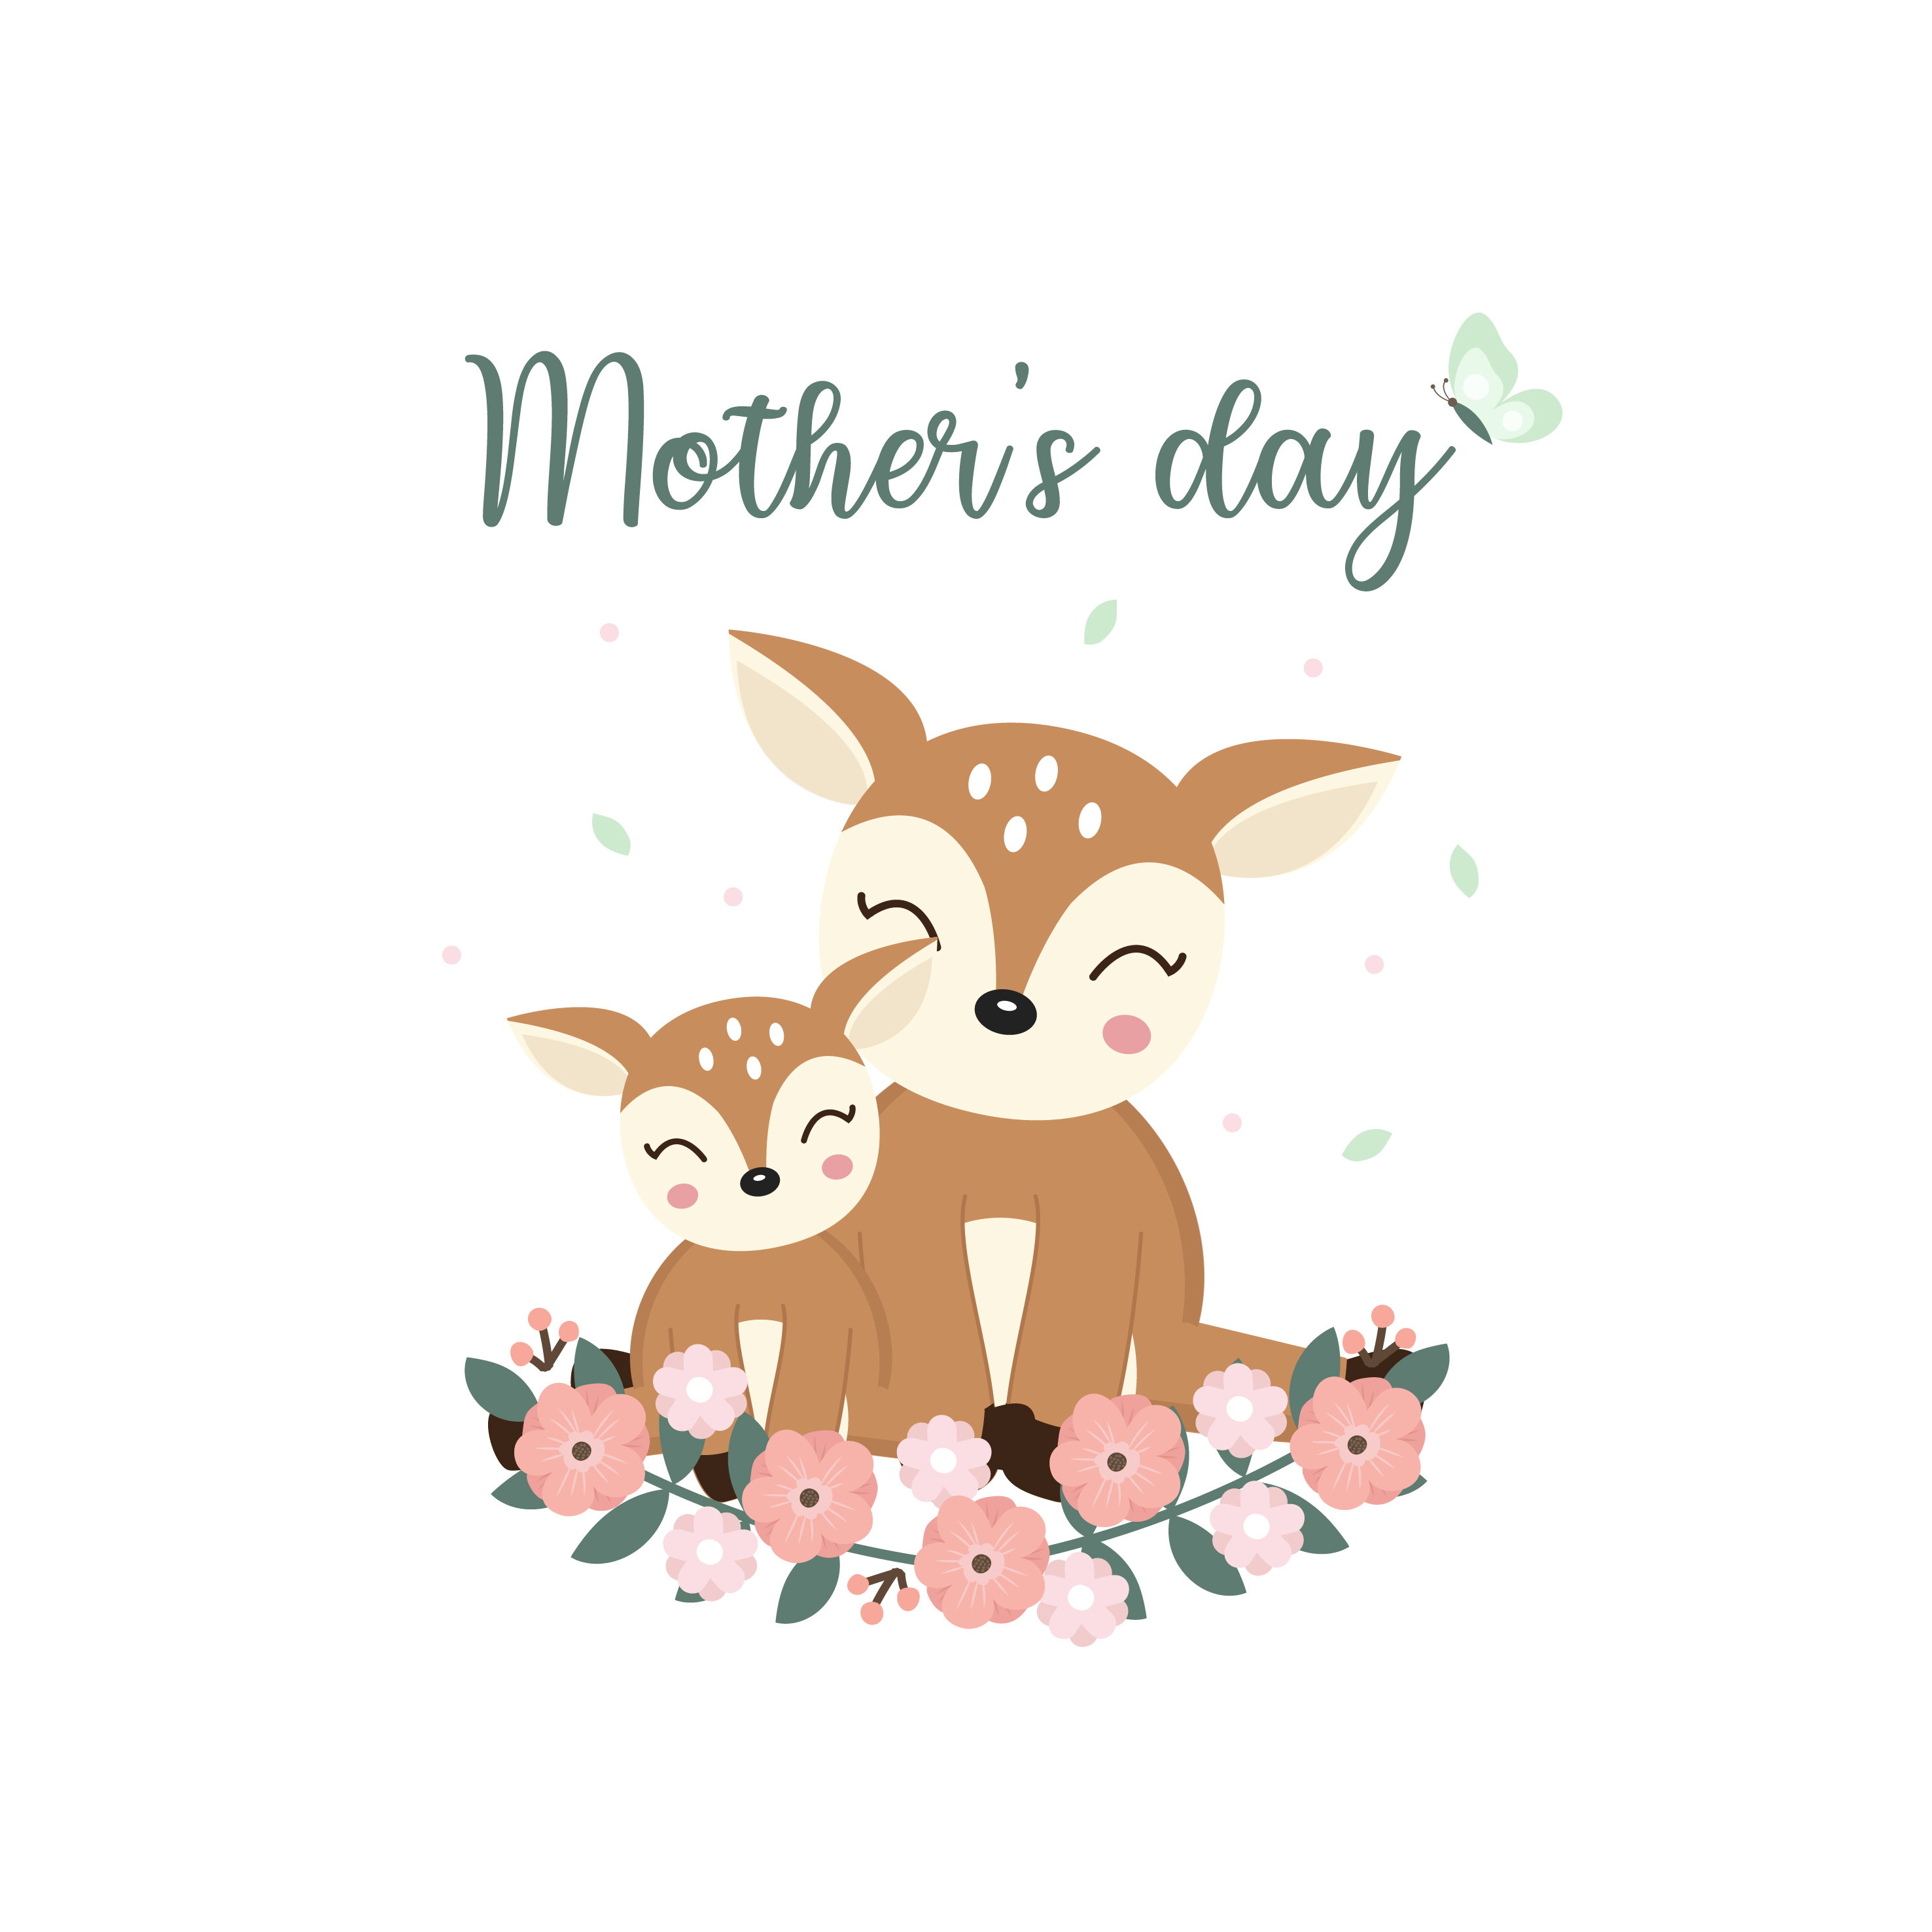 Cute Animals For Mothers Day Card Deer Mom And Her Baby Cartoon Download Free Vectors Clipart Graphics Vector Art